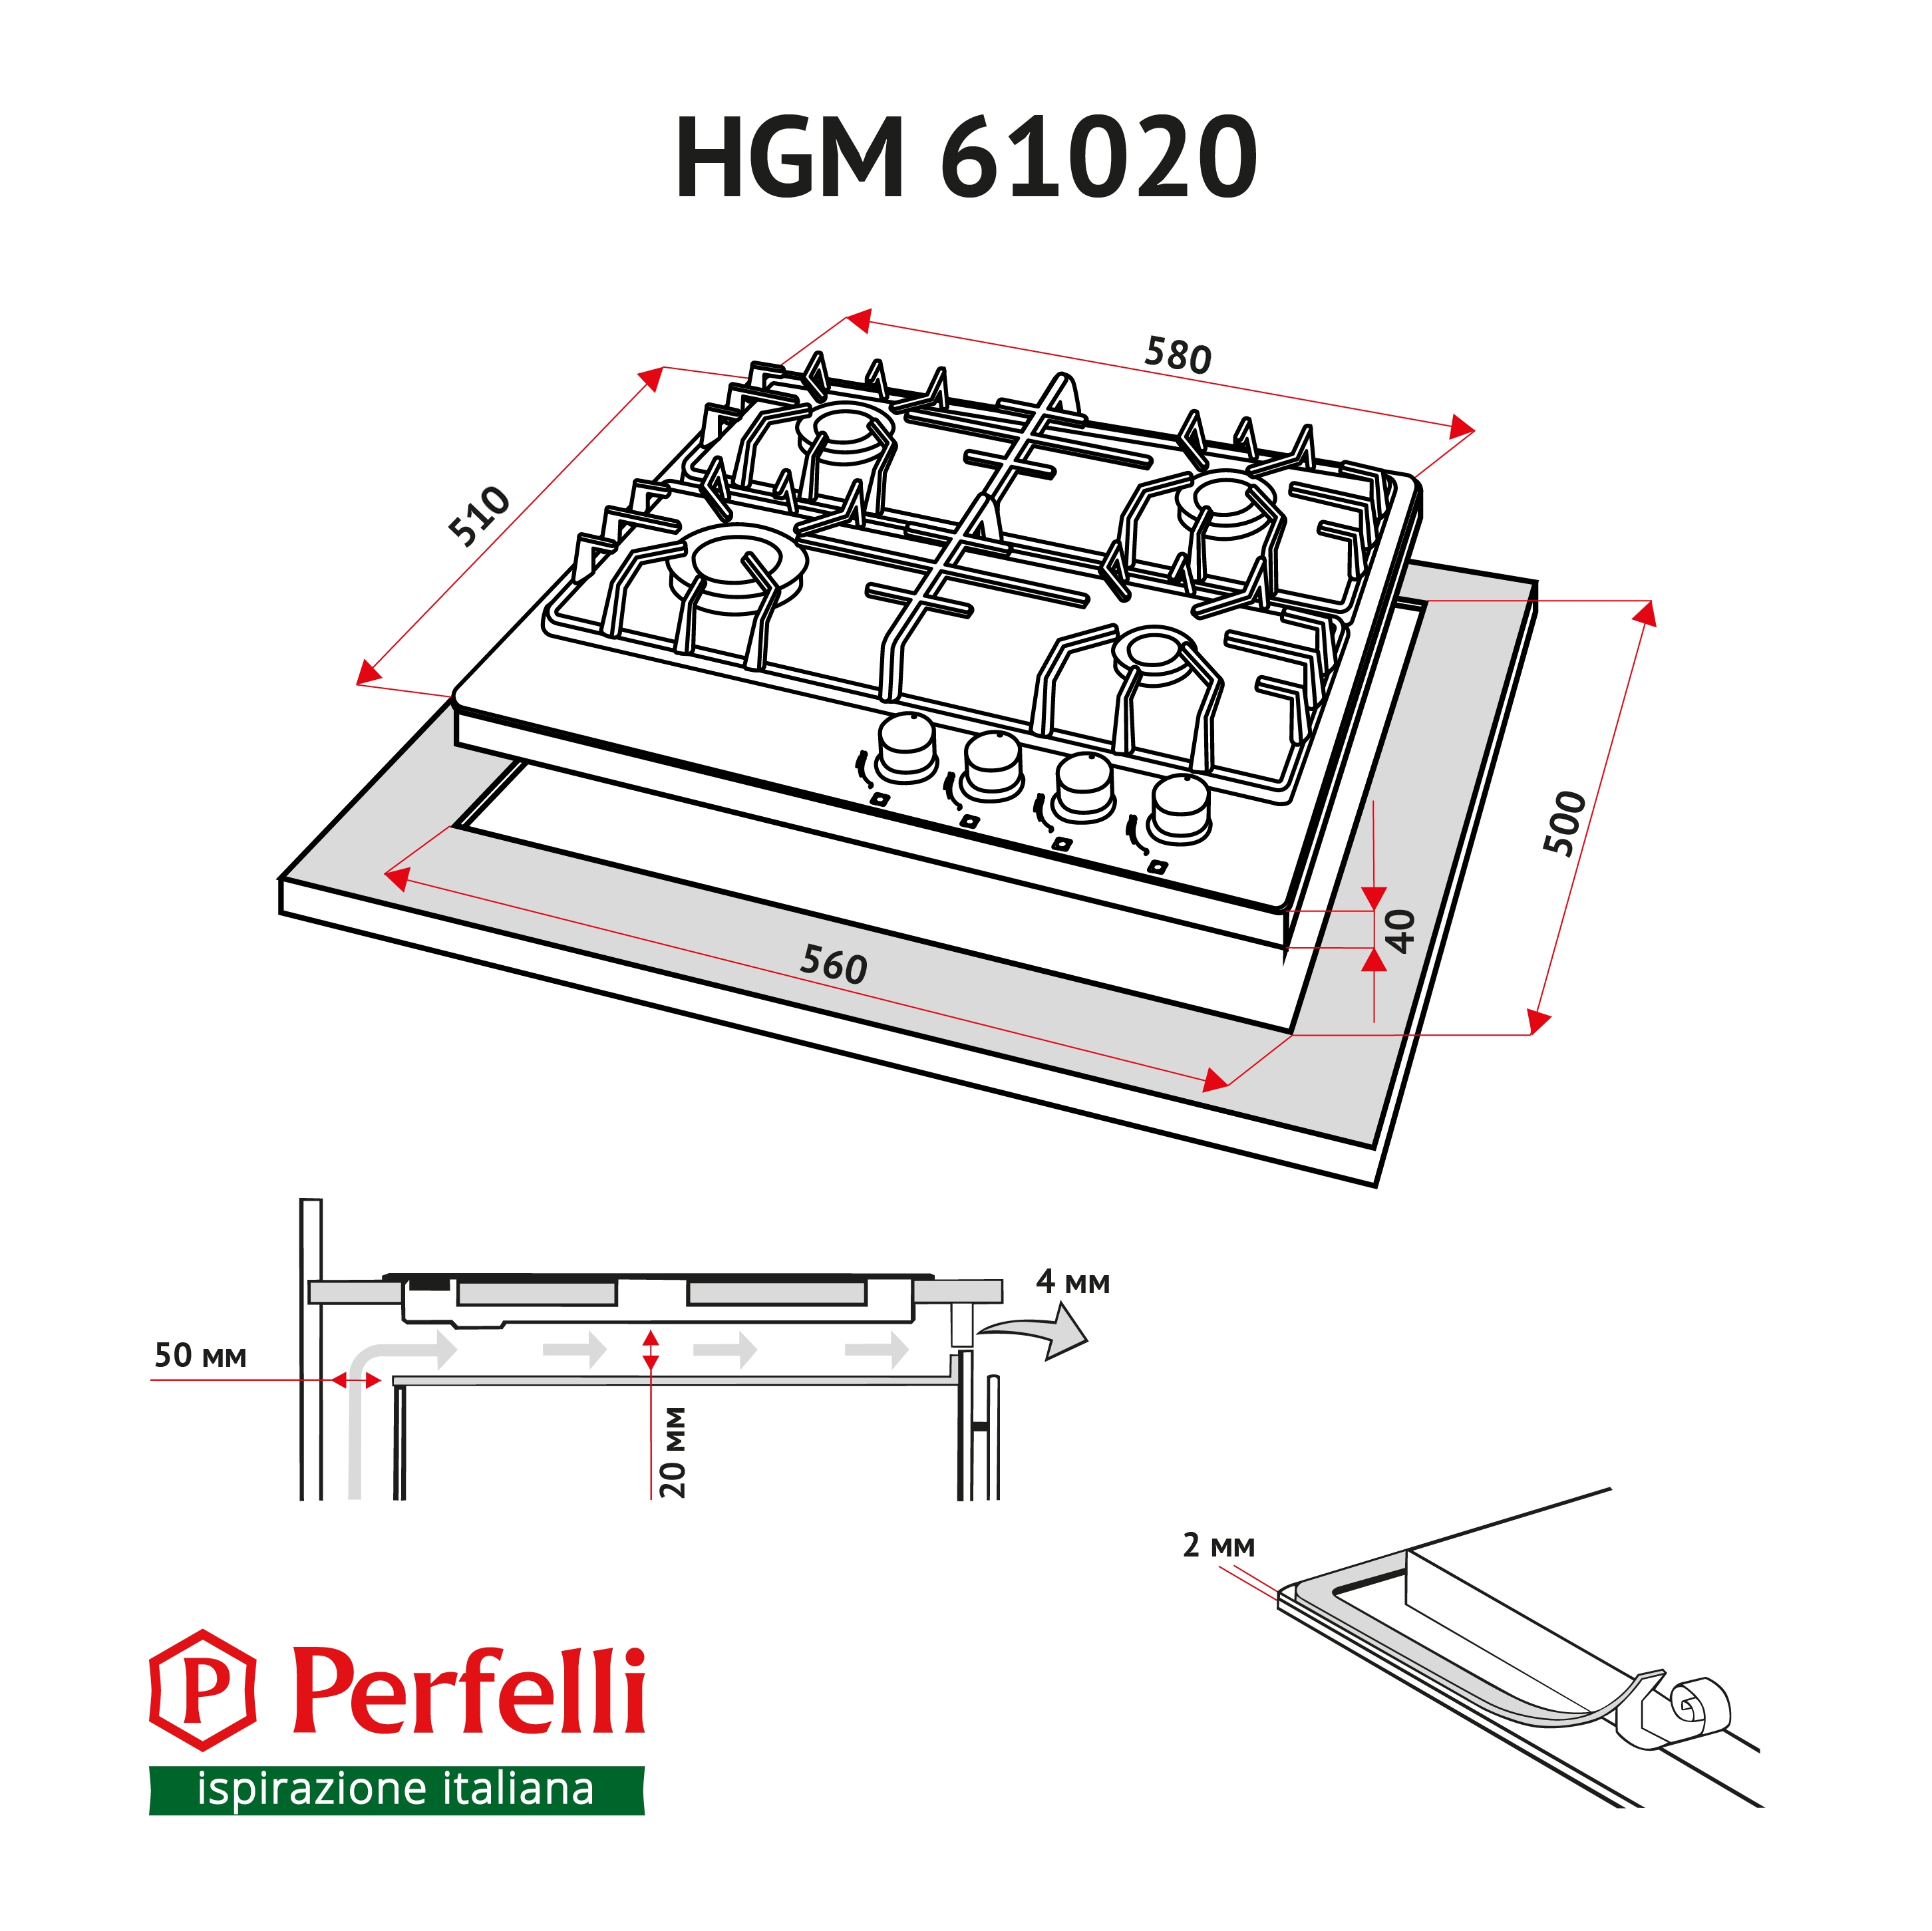 Gas Surface On Metal Perfelli HGM 61020 I